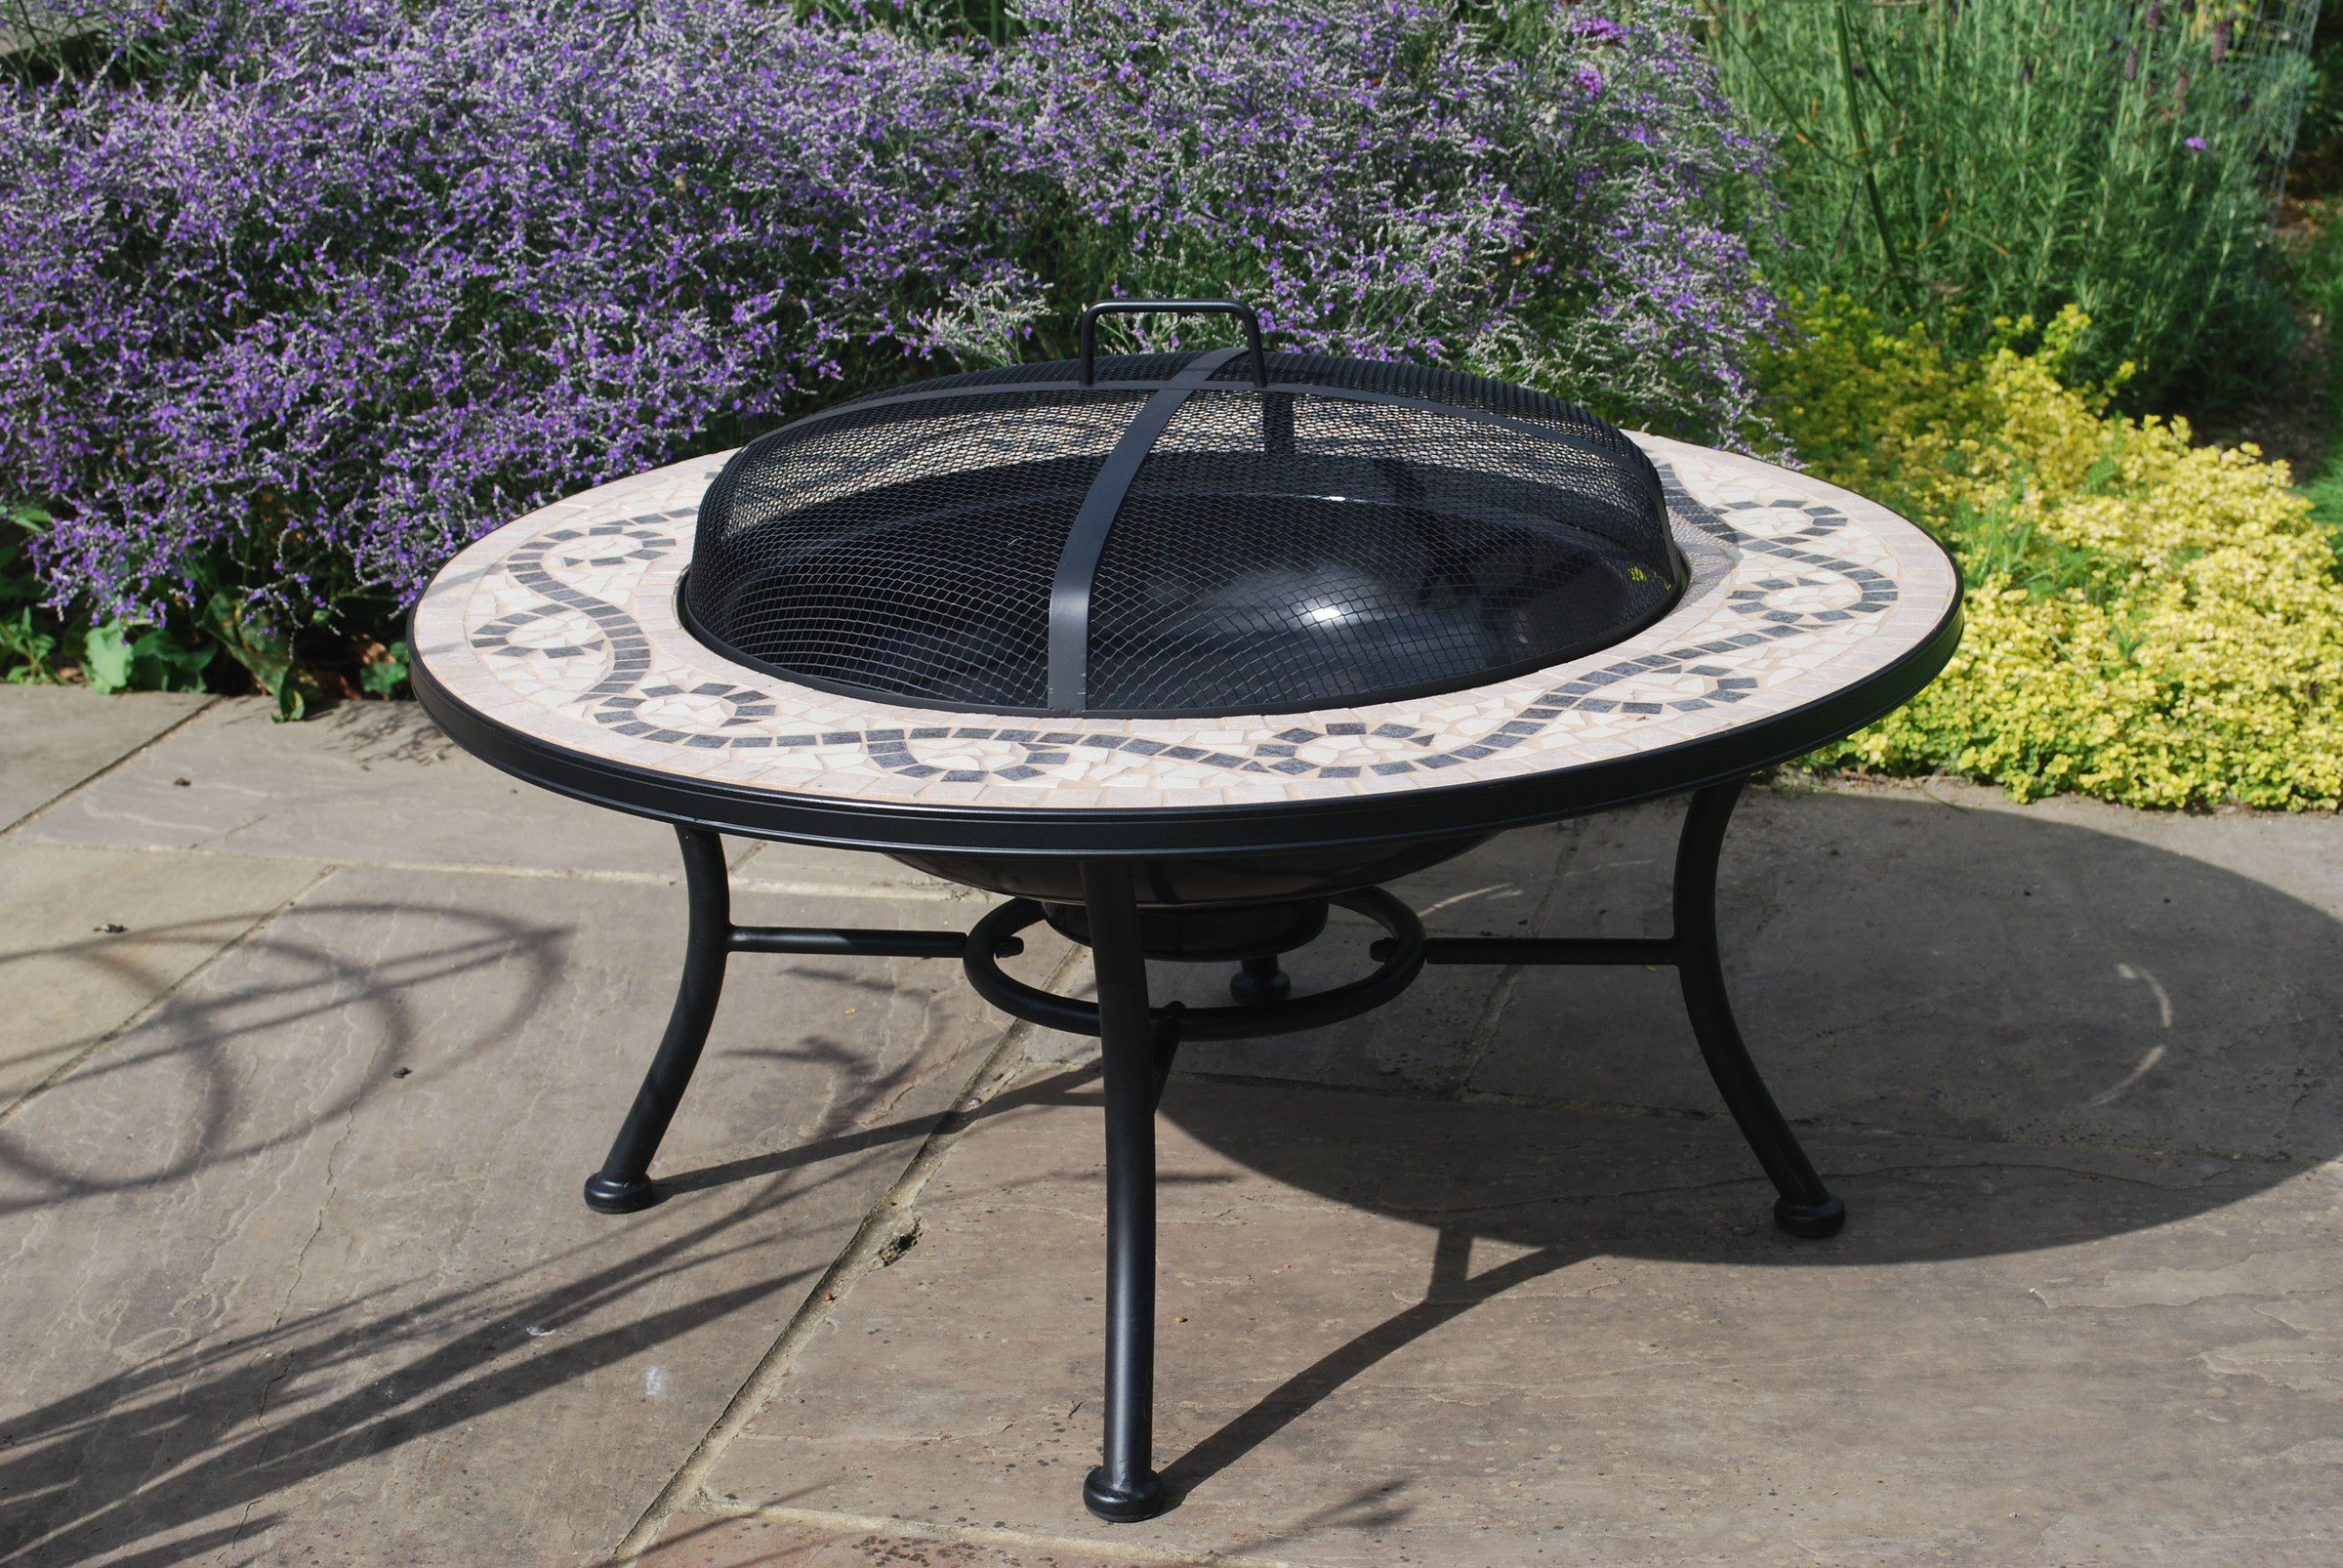 LeisureGrow 76cm Marrakech Firepit